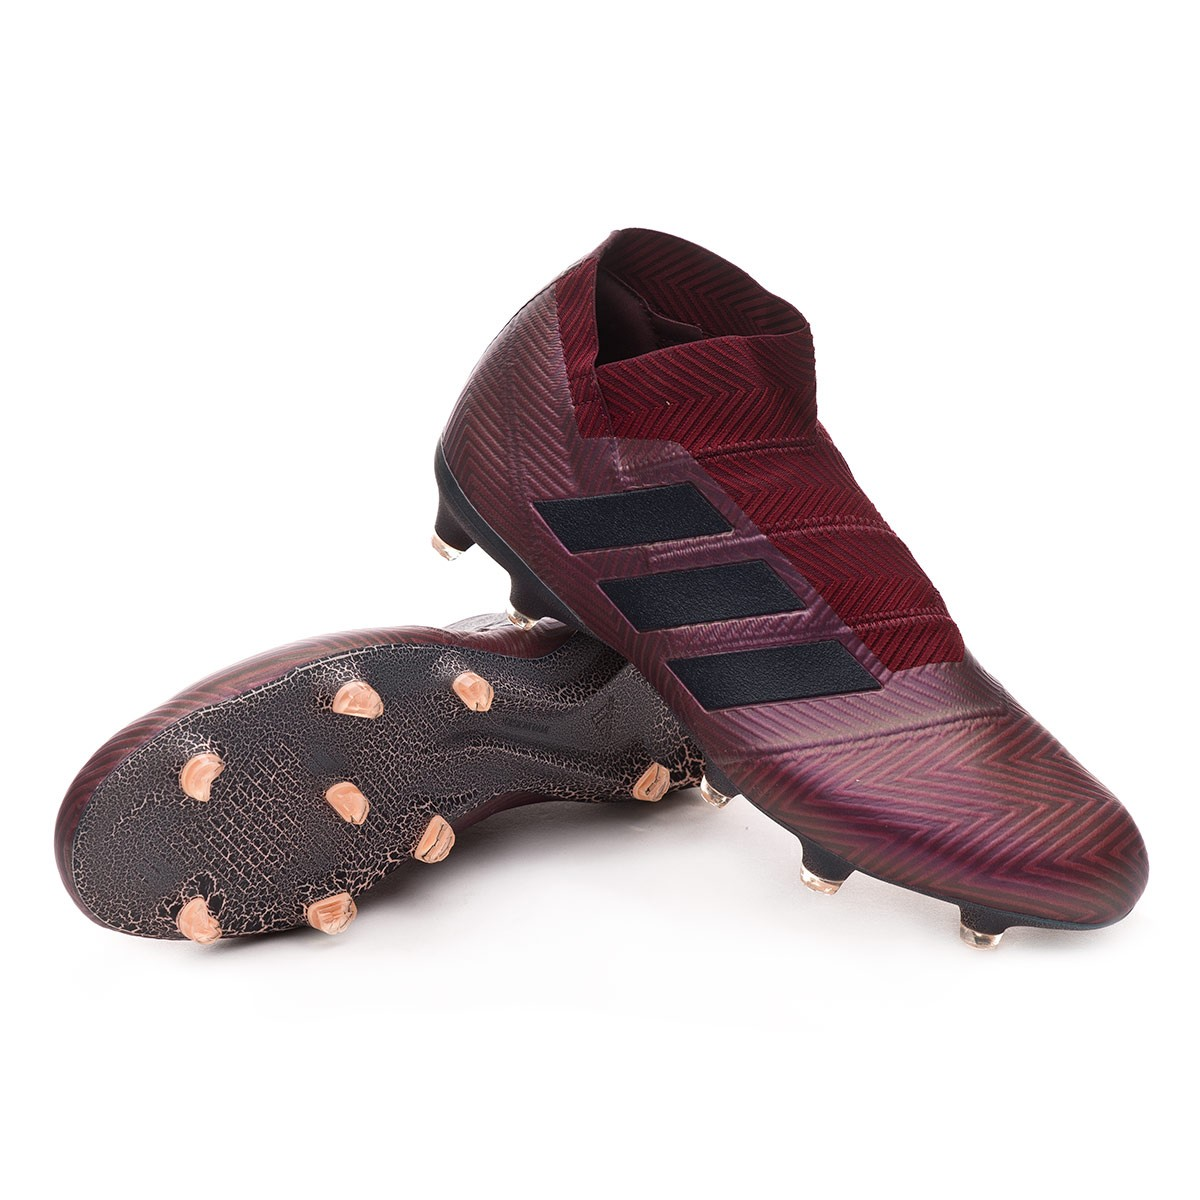 33eb989d5 adidas Nemeziz 18+ FG Football Boots. Maroon-Legend ink-Collegiate burgundy  ...